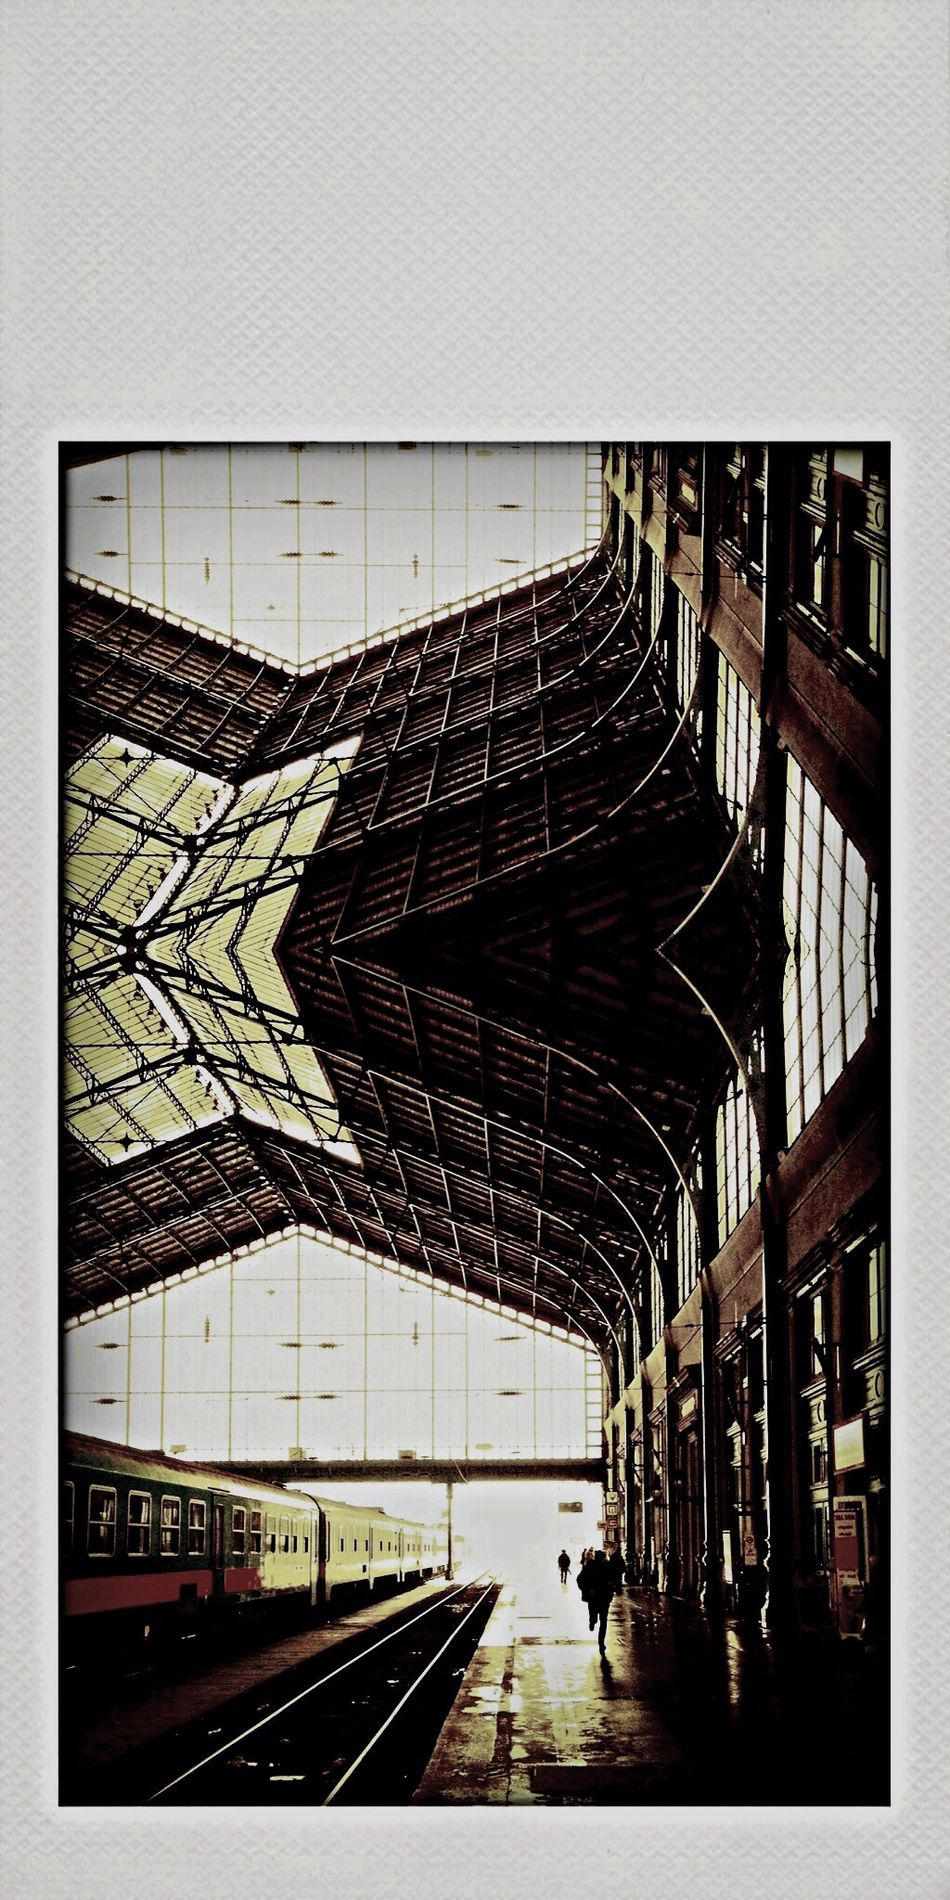 Eiffel Nyugati Railway Budapest Vanishing Point In The Terminal My Art Throw A Curve Looking To The Other Side Growing Better